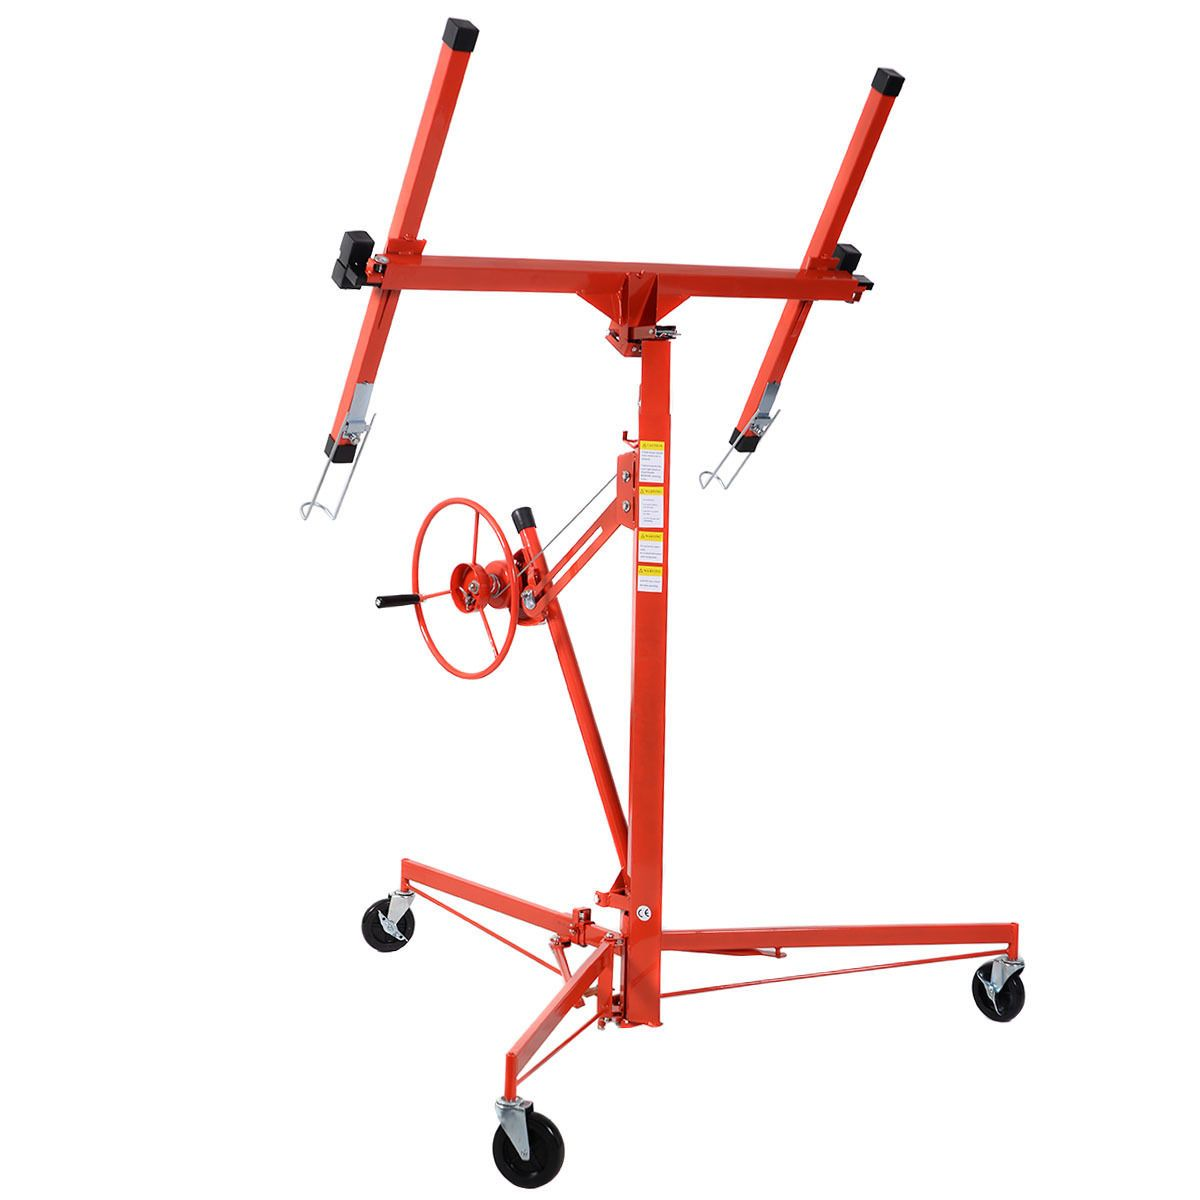 11' Drywall Lift Panel Hoist Dry Wall Jack Rolling Caster